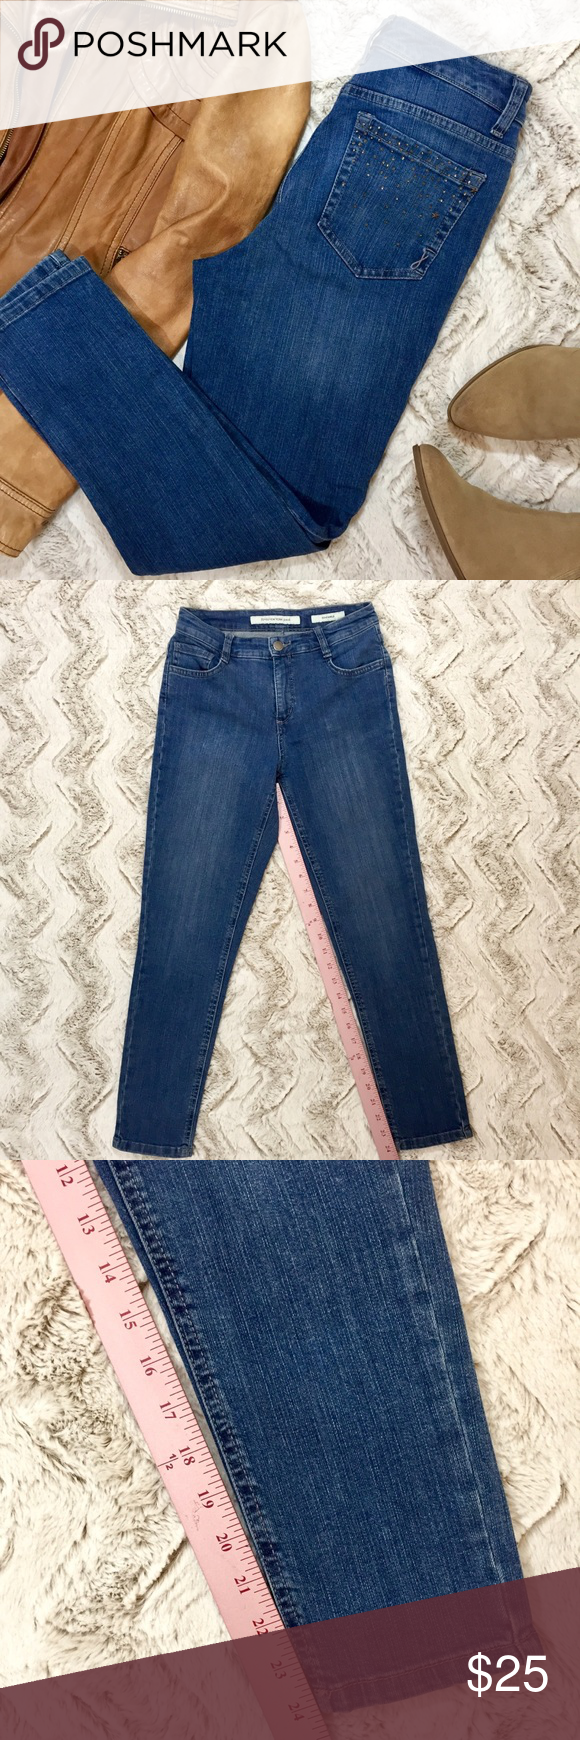 Jones New York Soho Ankle Crop Jeans Jones New York Soho Ankle Crop Jeans So Soft And Comfortable I Only Wore The Clothes Design Cropped Jeans Fashion Design